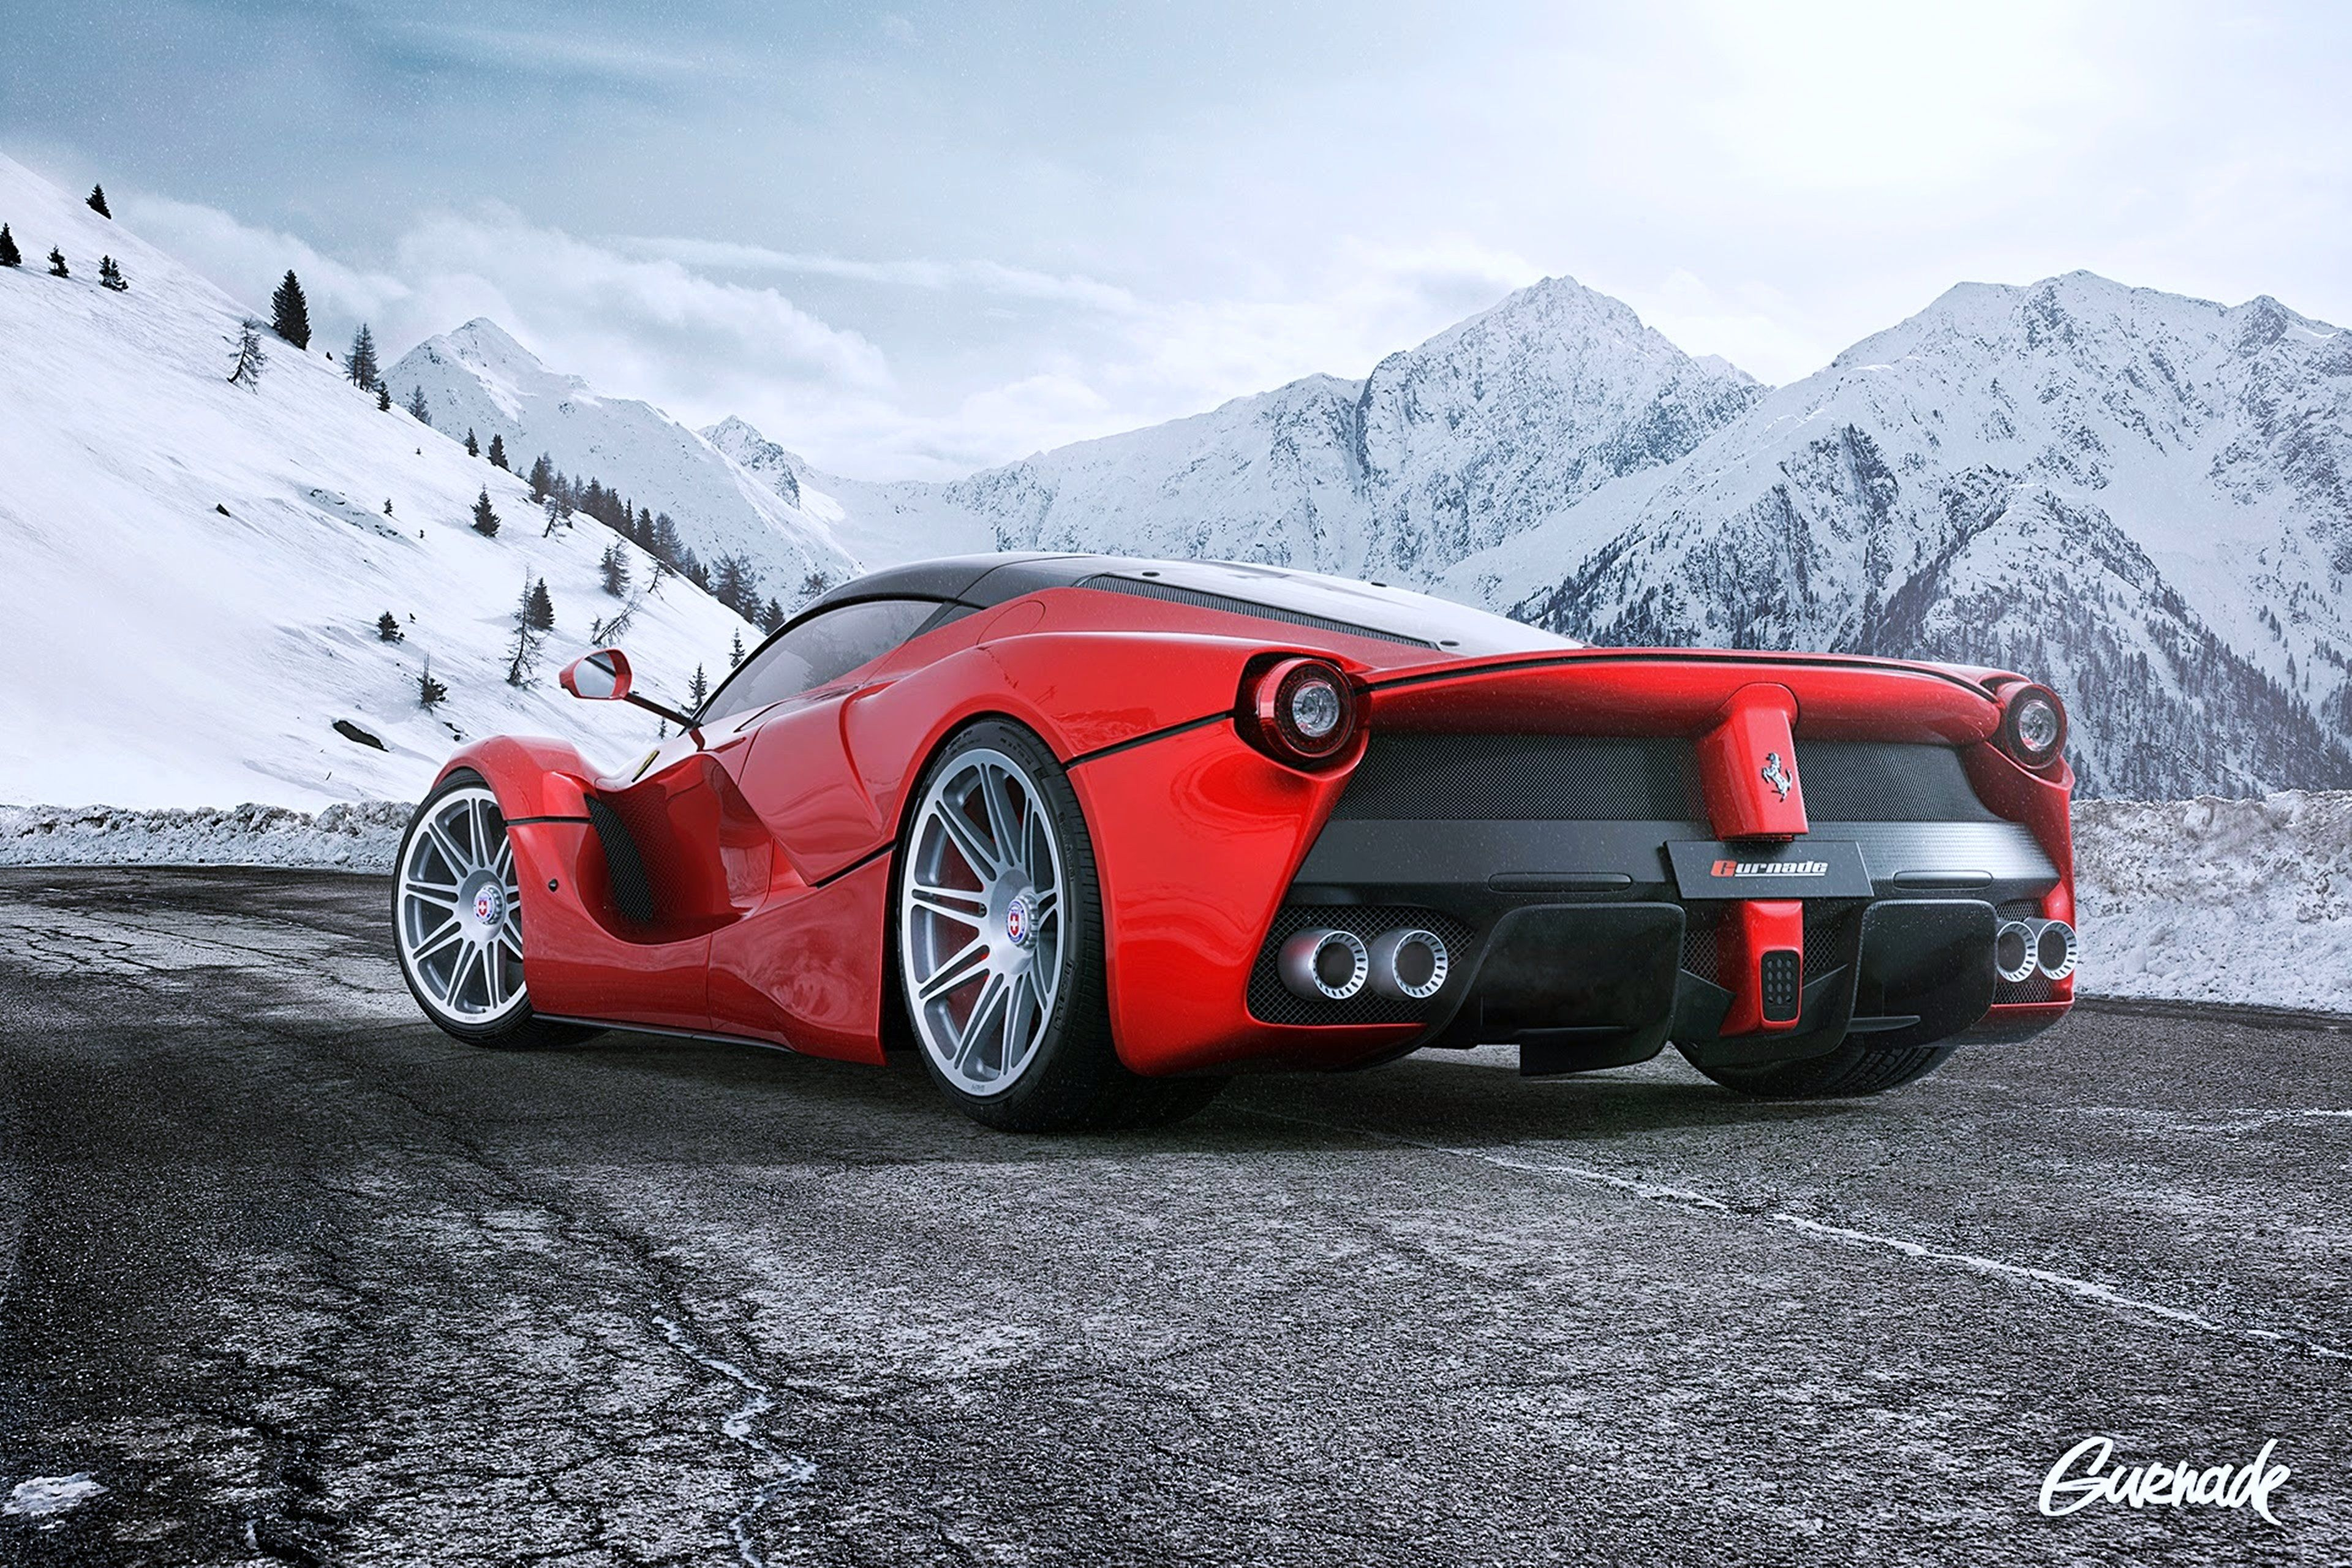 Ferrari LaFerrari HRE Wheels landscape road mountains cars supercars on ferrari electric car, ferrari f100, ferrari f60, ferrari meme, ferrari aliante, ferrari ego, ferrari lamborghini mix, ferrari f750, ferrari bike, ferrari laptop, ferrari f1, ferrari f1000, ferrari of the future, ferrari concept, ferrari formula 1, ferrari cop car, ferrari logo, ferrari ff, ferrari suv,